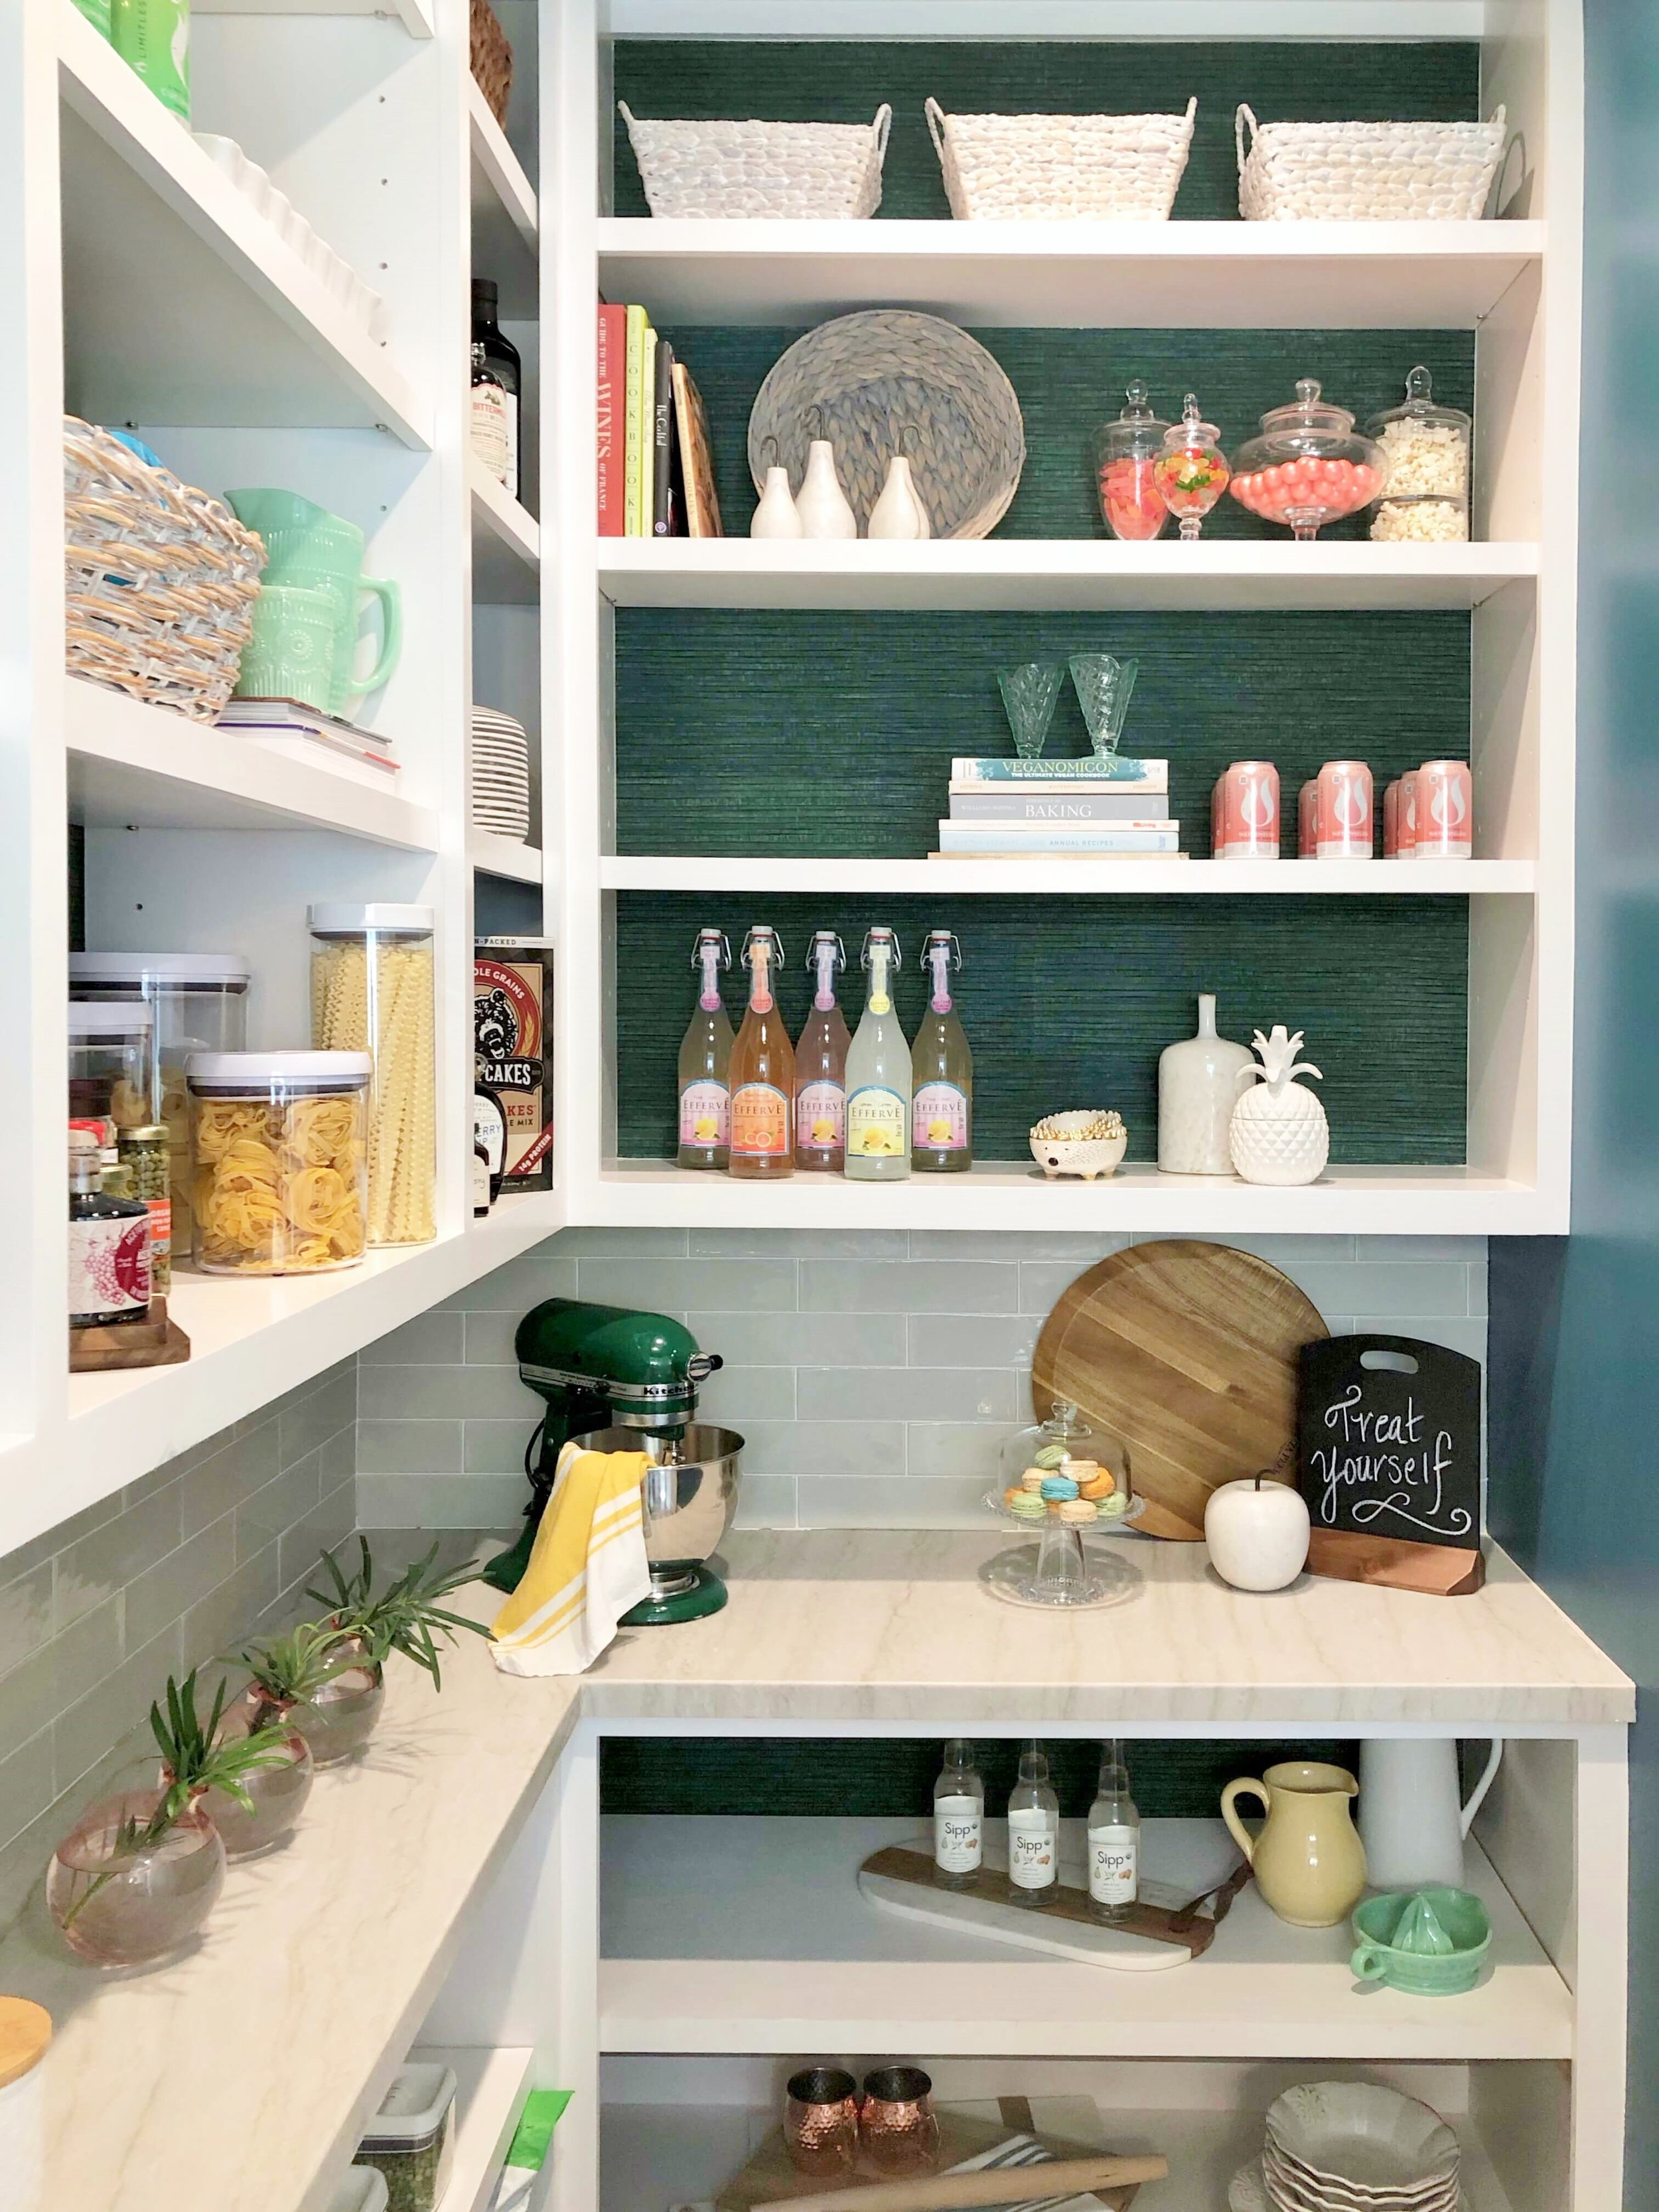 Fabulous pantry with green grasscloth wallcovering and quartzite countertop designed by Chairma Design Group at the ASID Showhouse, Houston. #pantry #kitchen